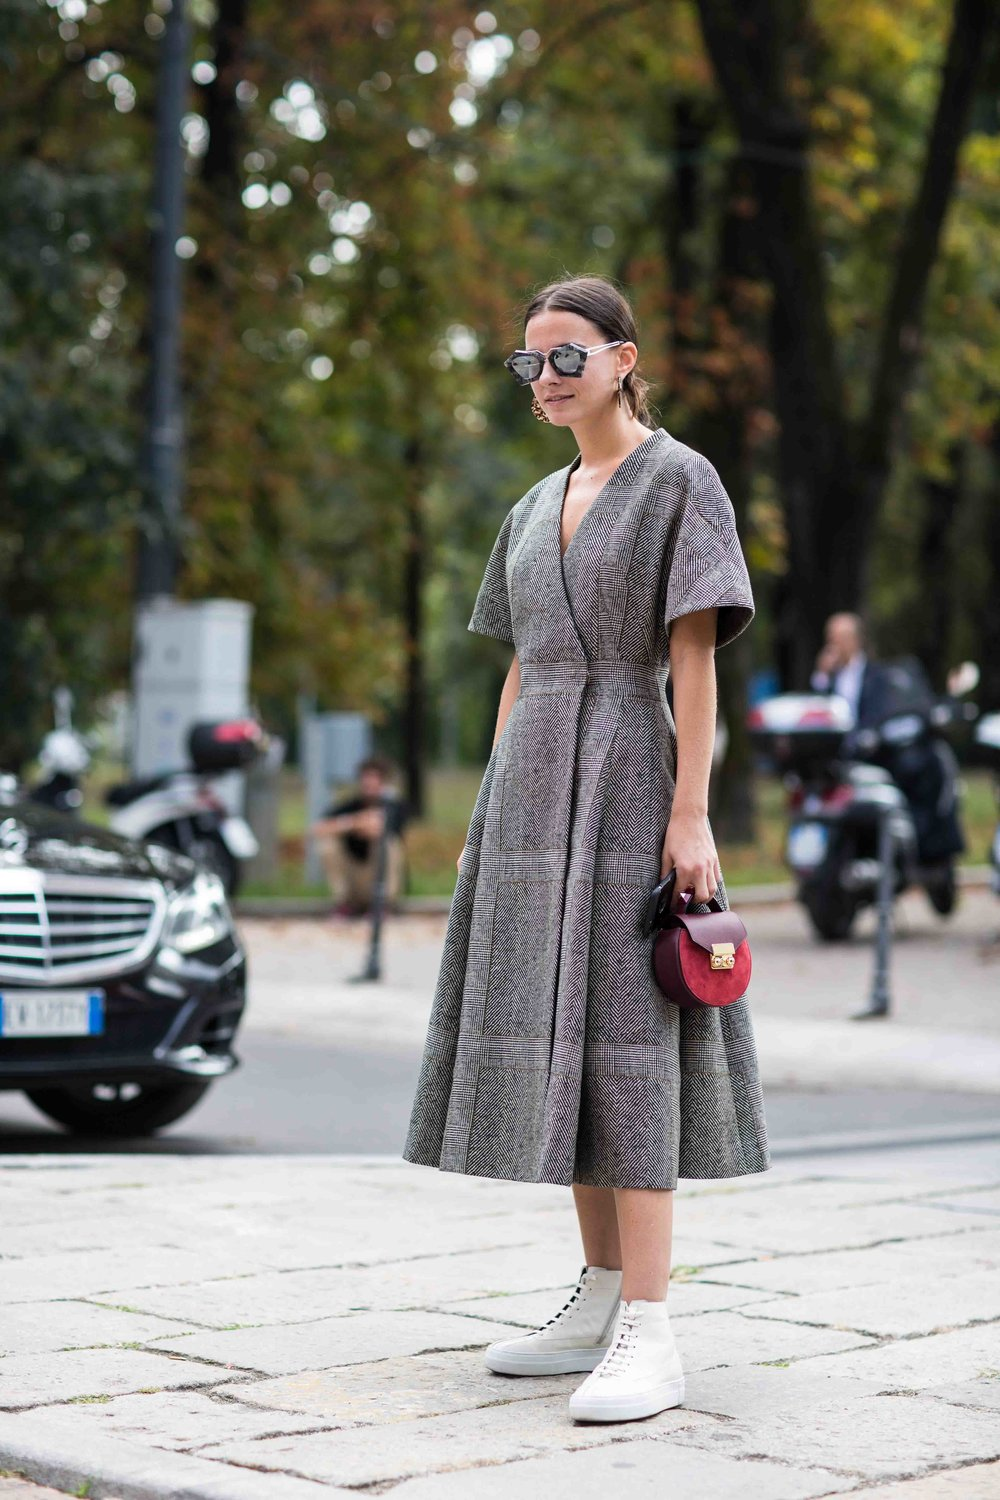 street-style-fashion-blog-innsbruck-milan-fashion-week-11